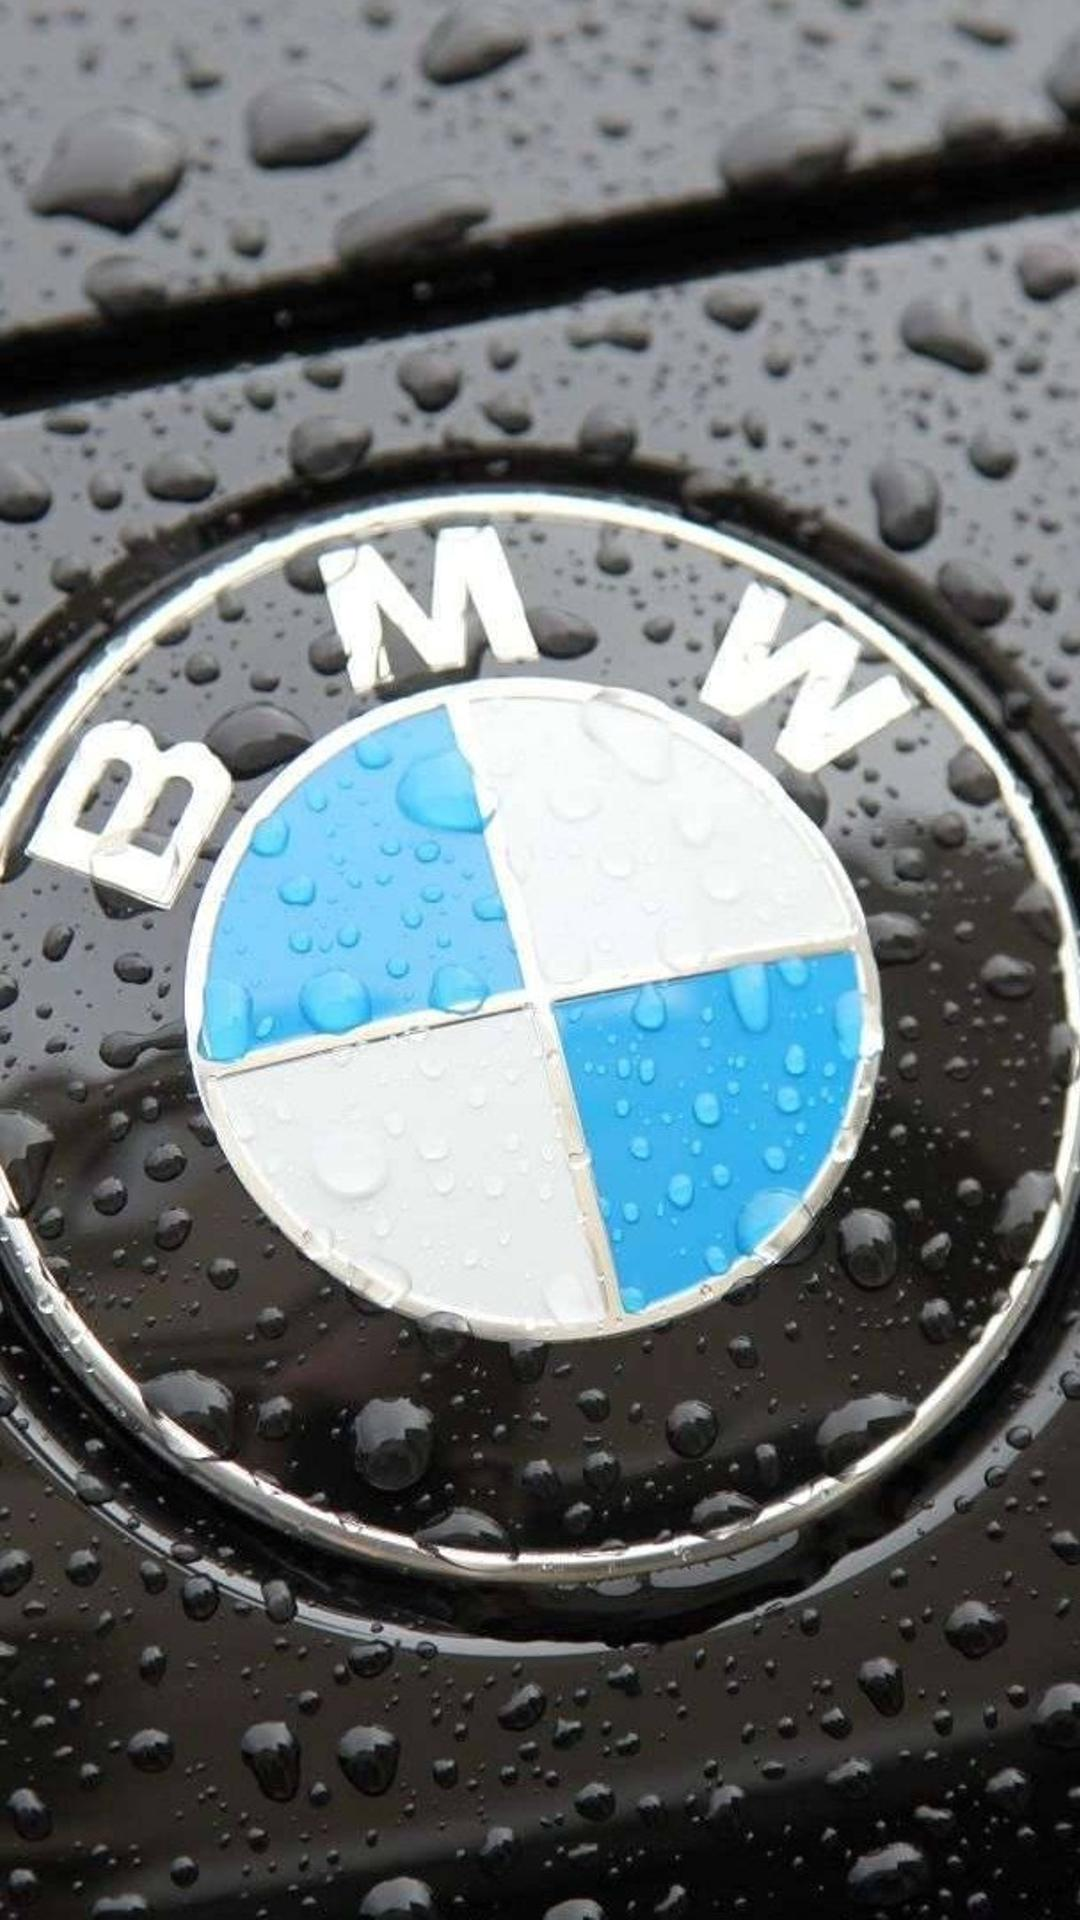 the bmw logo on a black car with raindrops wallpaper download 1080x1920